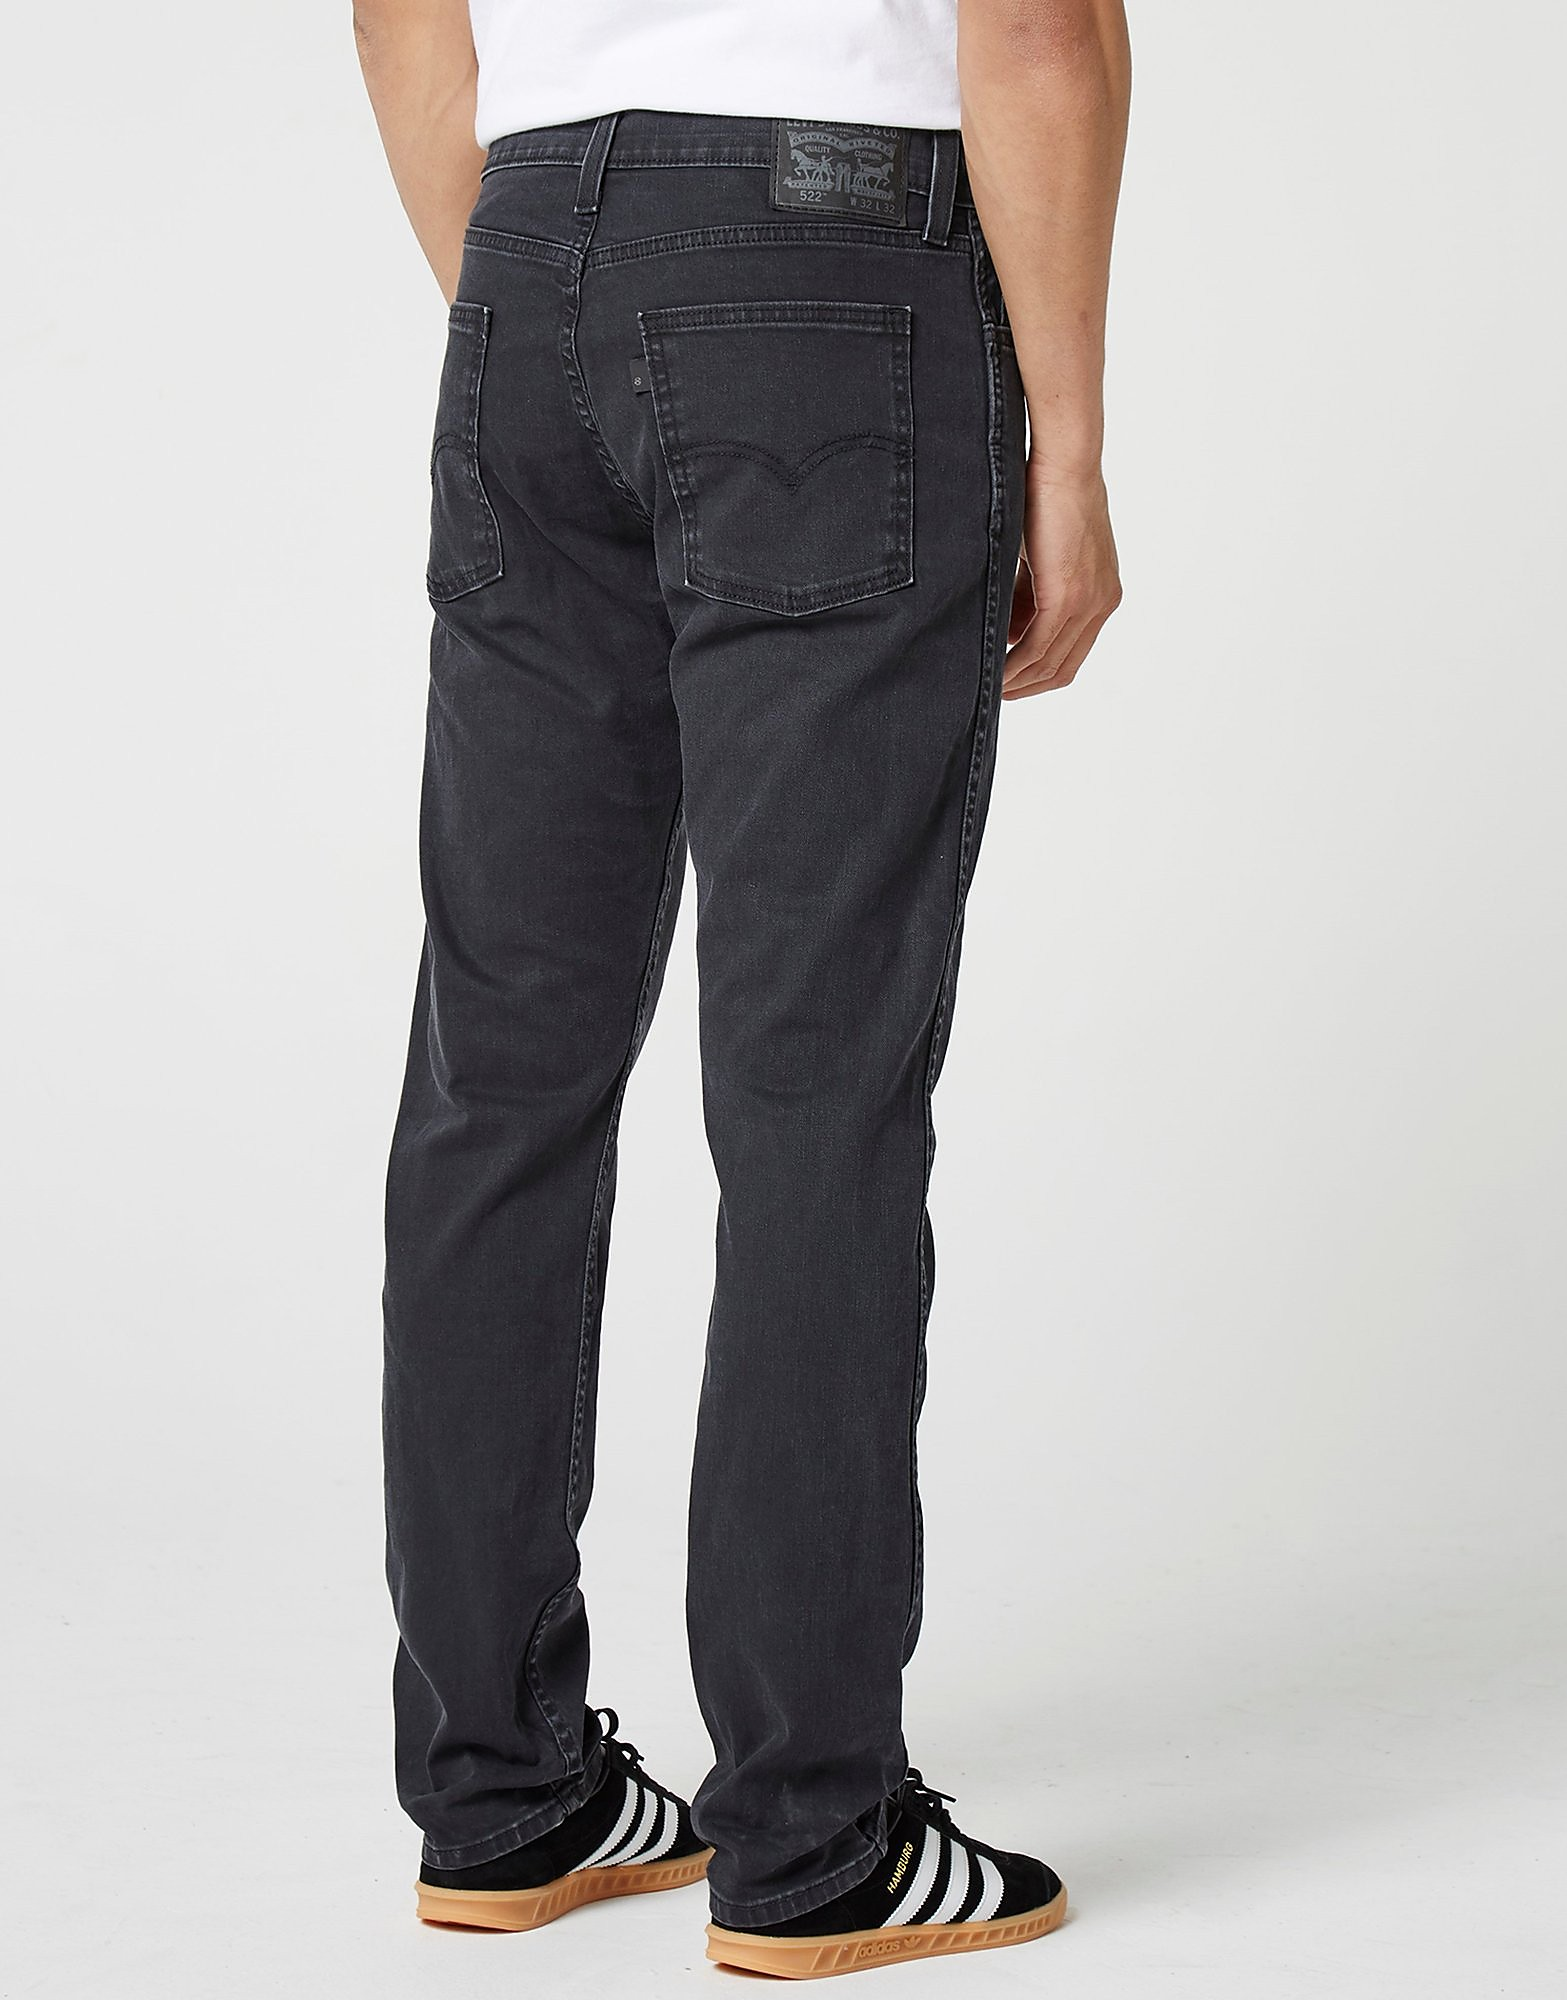 Levis 522 Tapered Jean